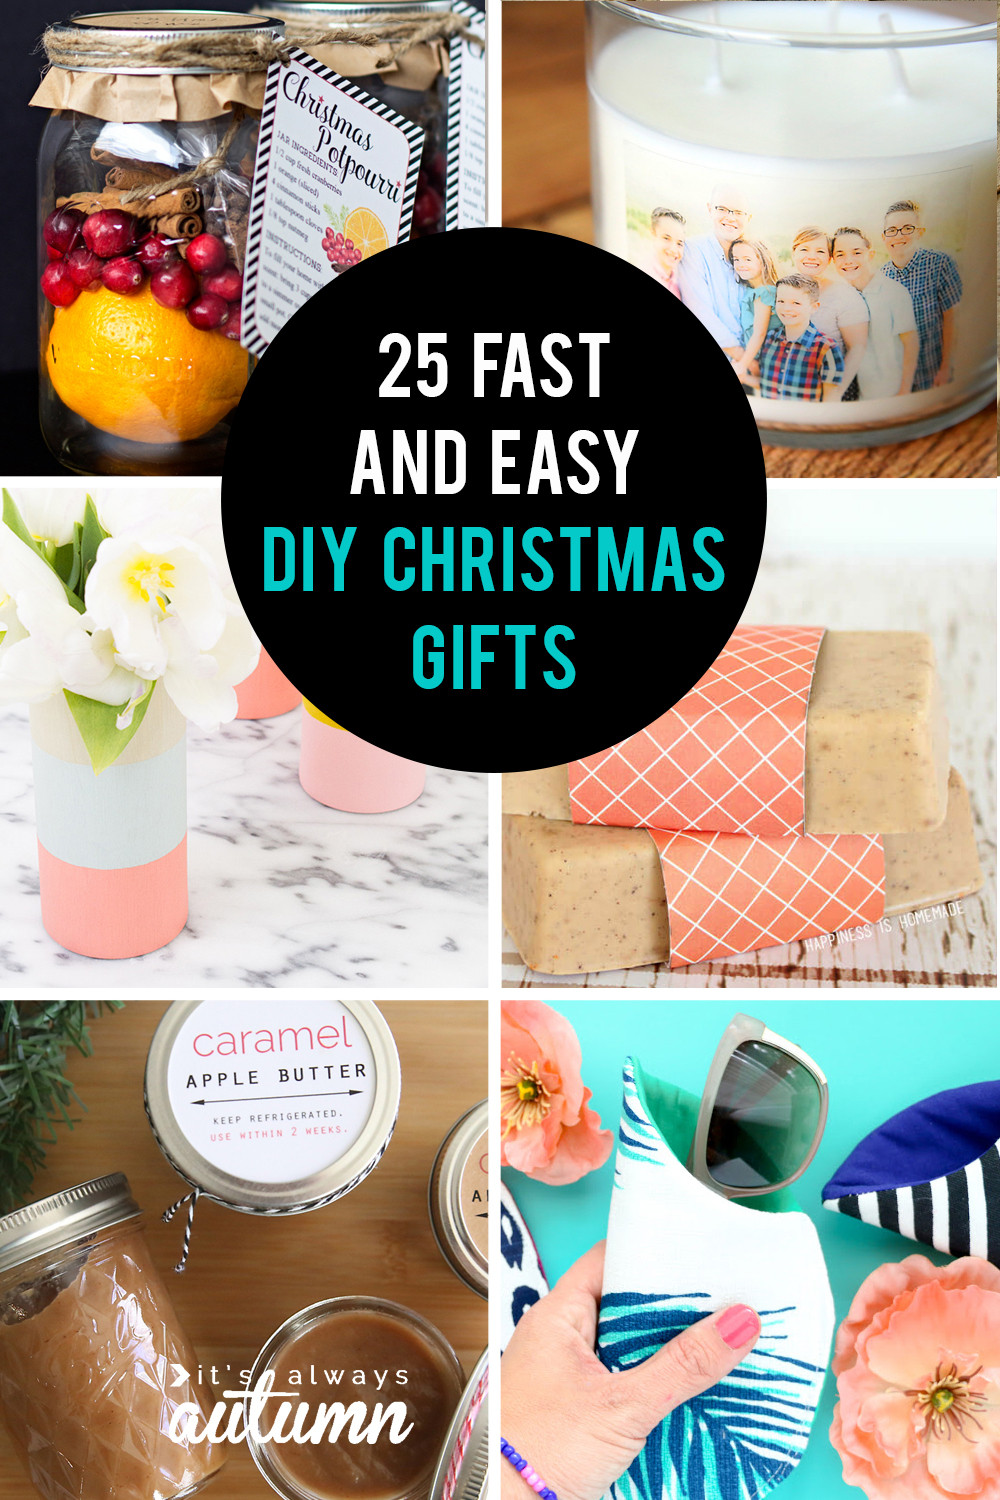 Best ideas about DIY Christmas Gift . Save or Pin 25 easy homemade Christmas ts you can make in 15 Now.